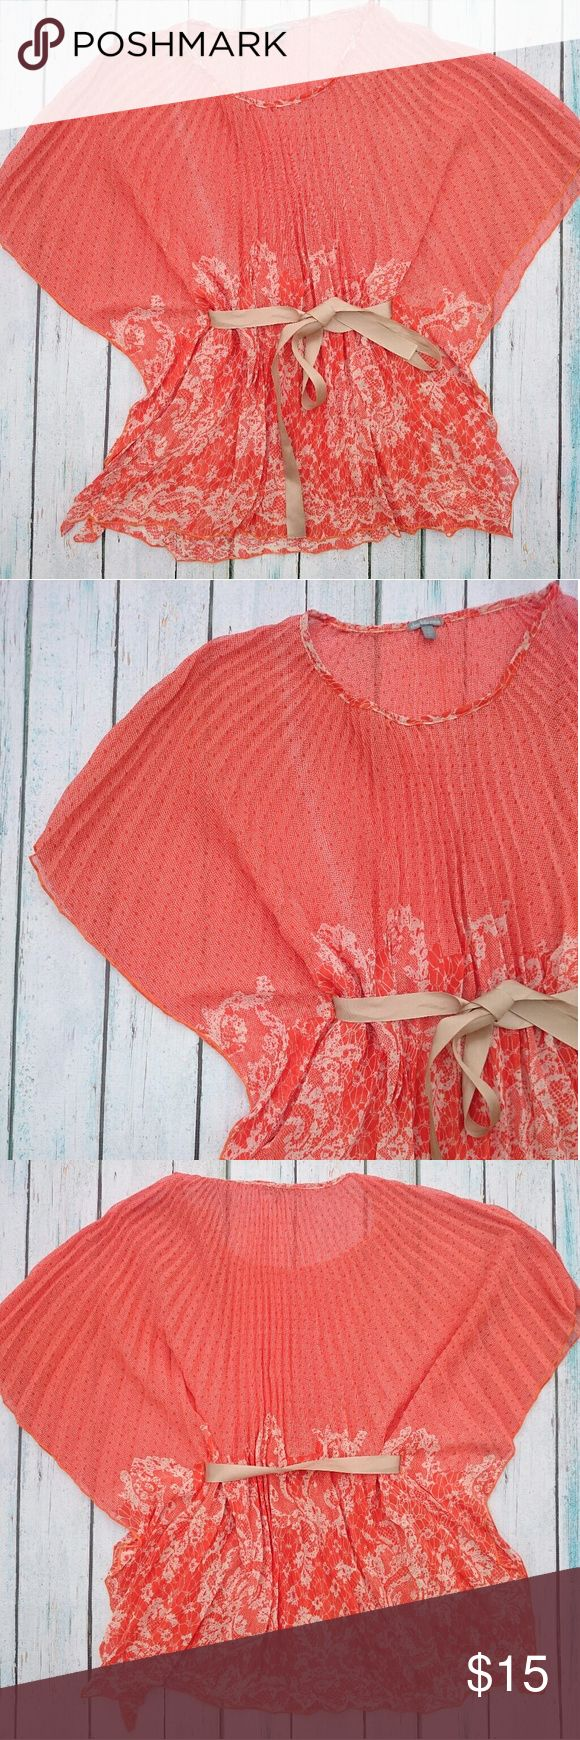 Unique Poncho Top Orange and white poncho, batwing top for Charlotte Russe. Sheer, flowy chiffon kind of material. Gold ribbon tie at waist. EUC. No flaws that I can tell. Charlotte Russe Tops